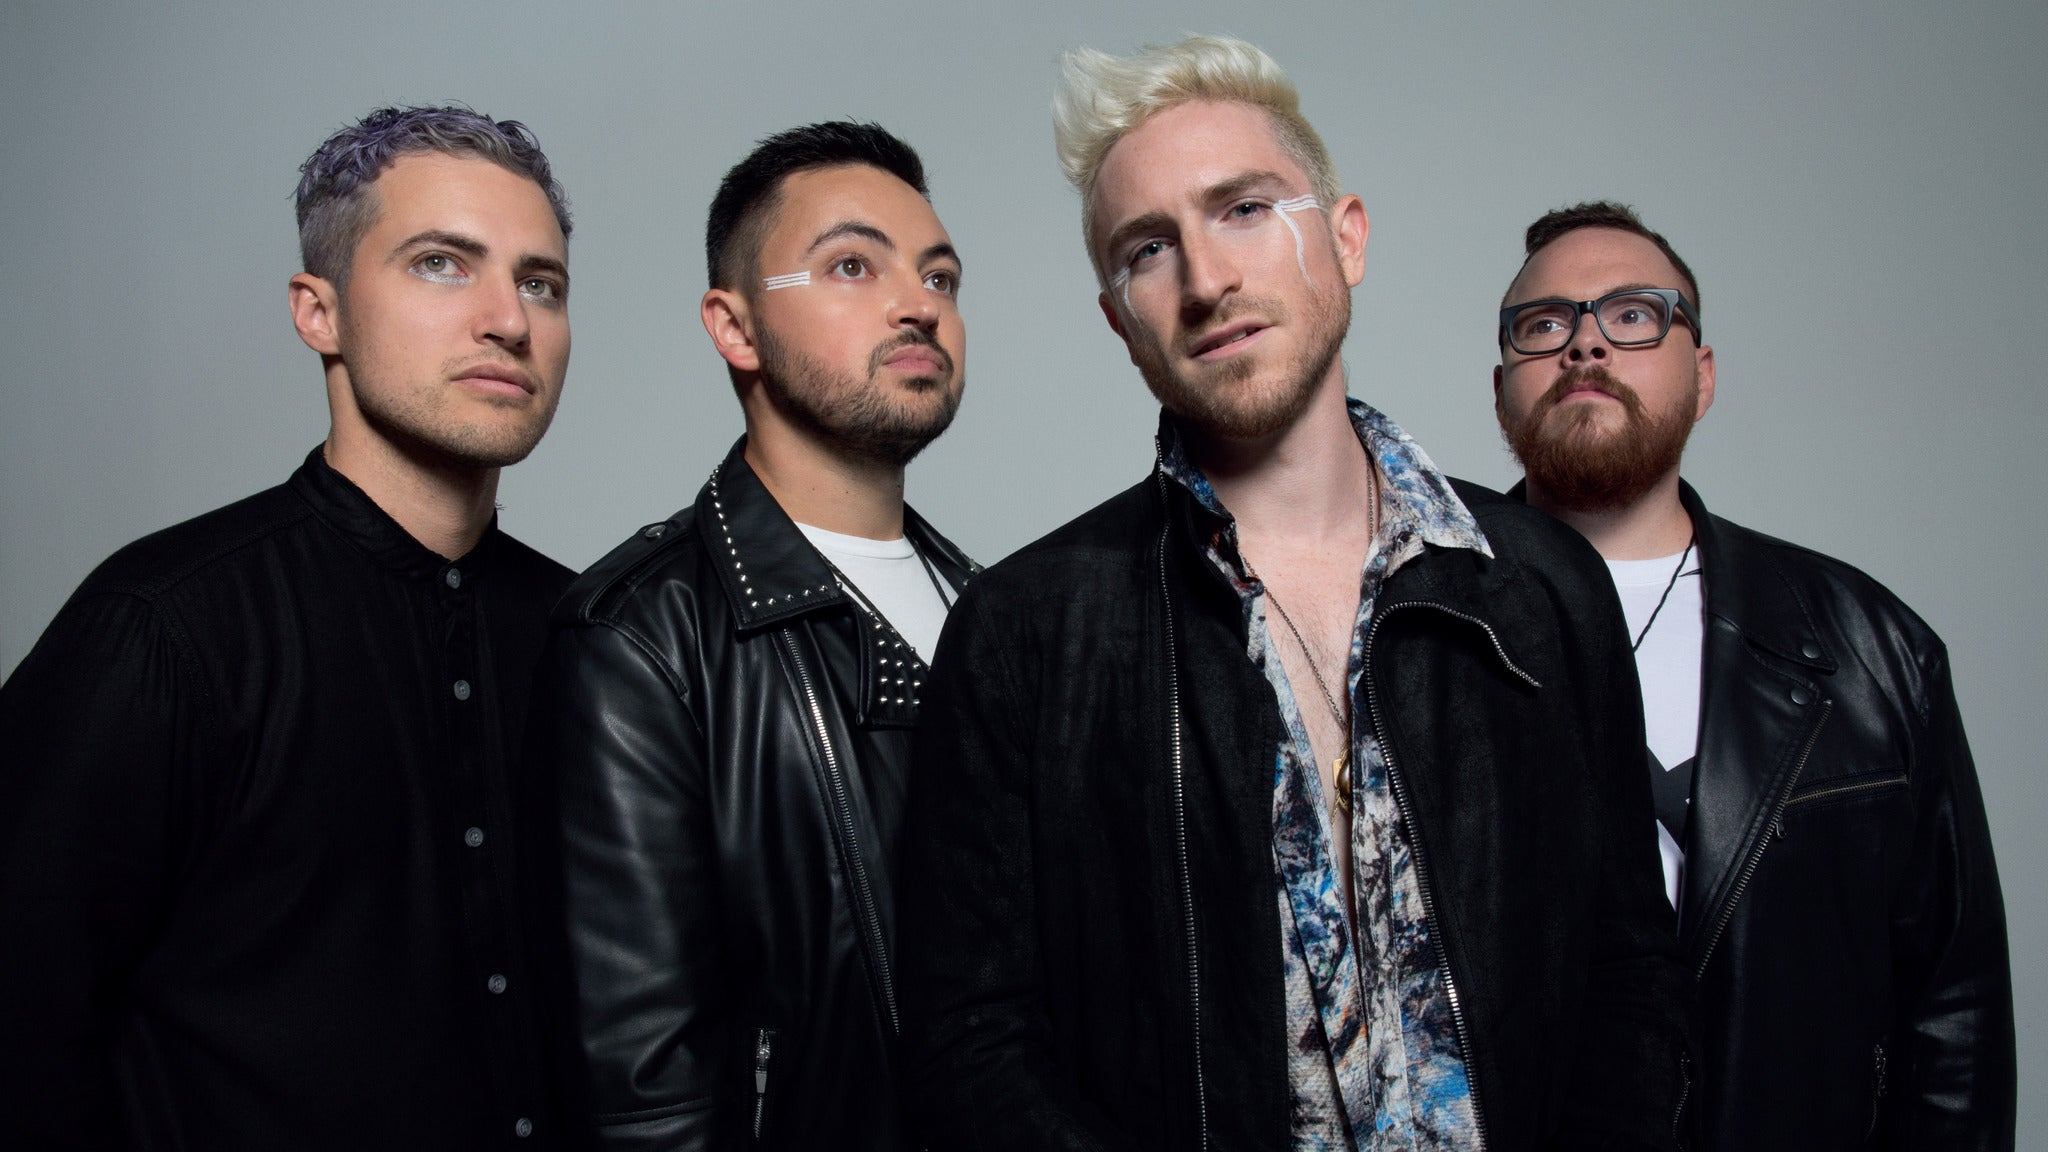 95X Rocksgiving with Walk The Moon at The Ritz